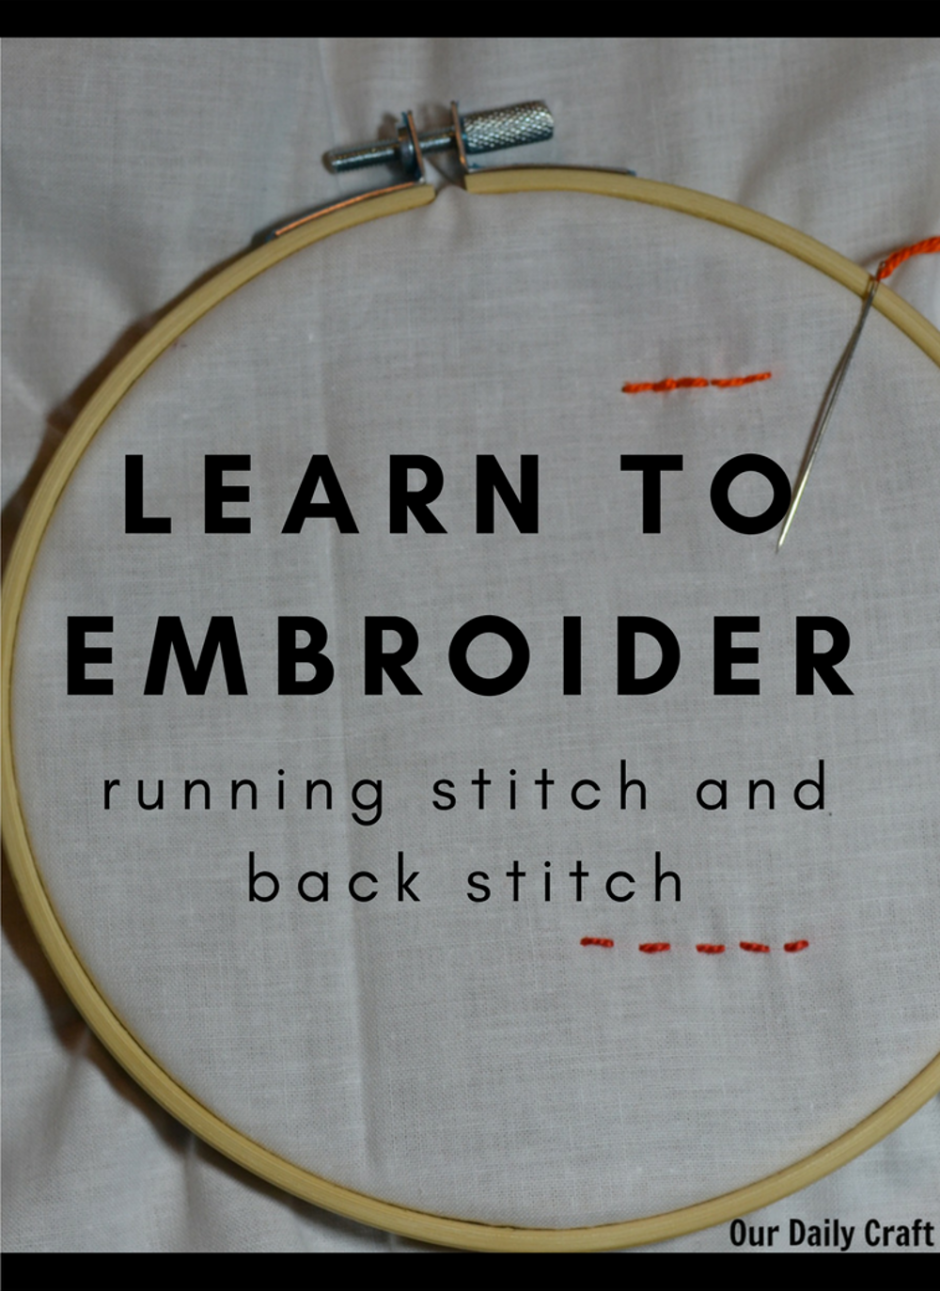 Learn to embroider with basic embroidery sttiches running stitch and back stitch